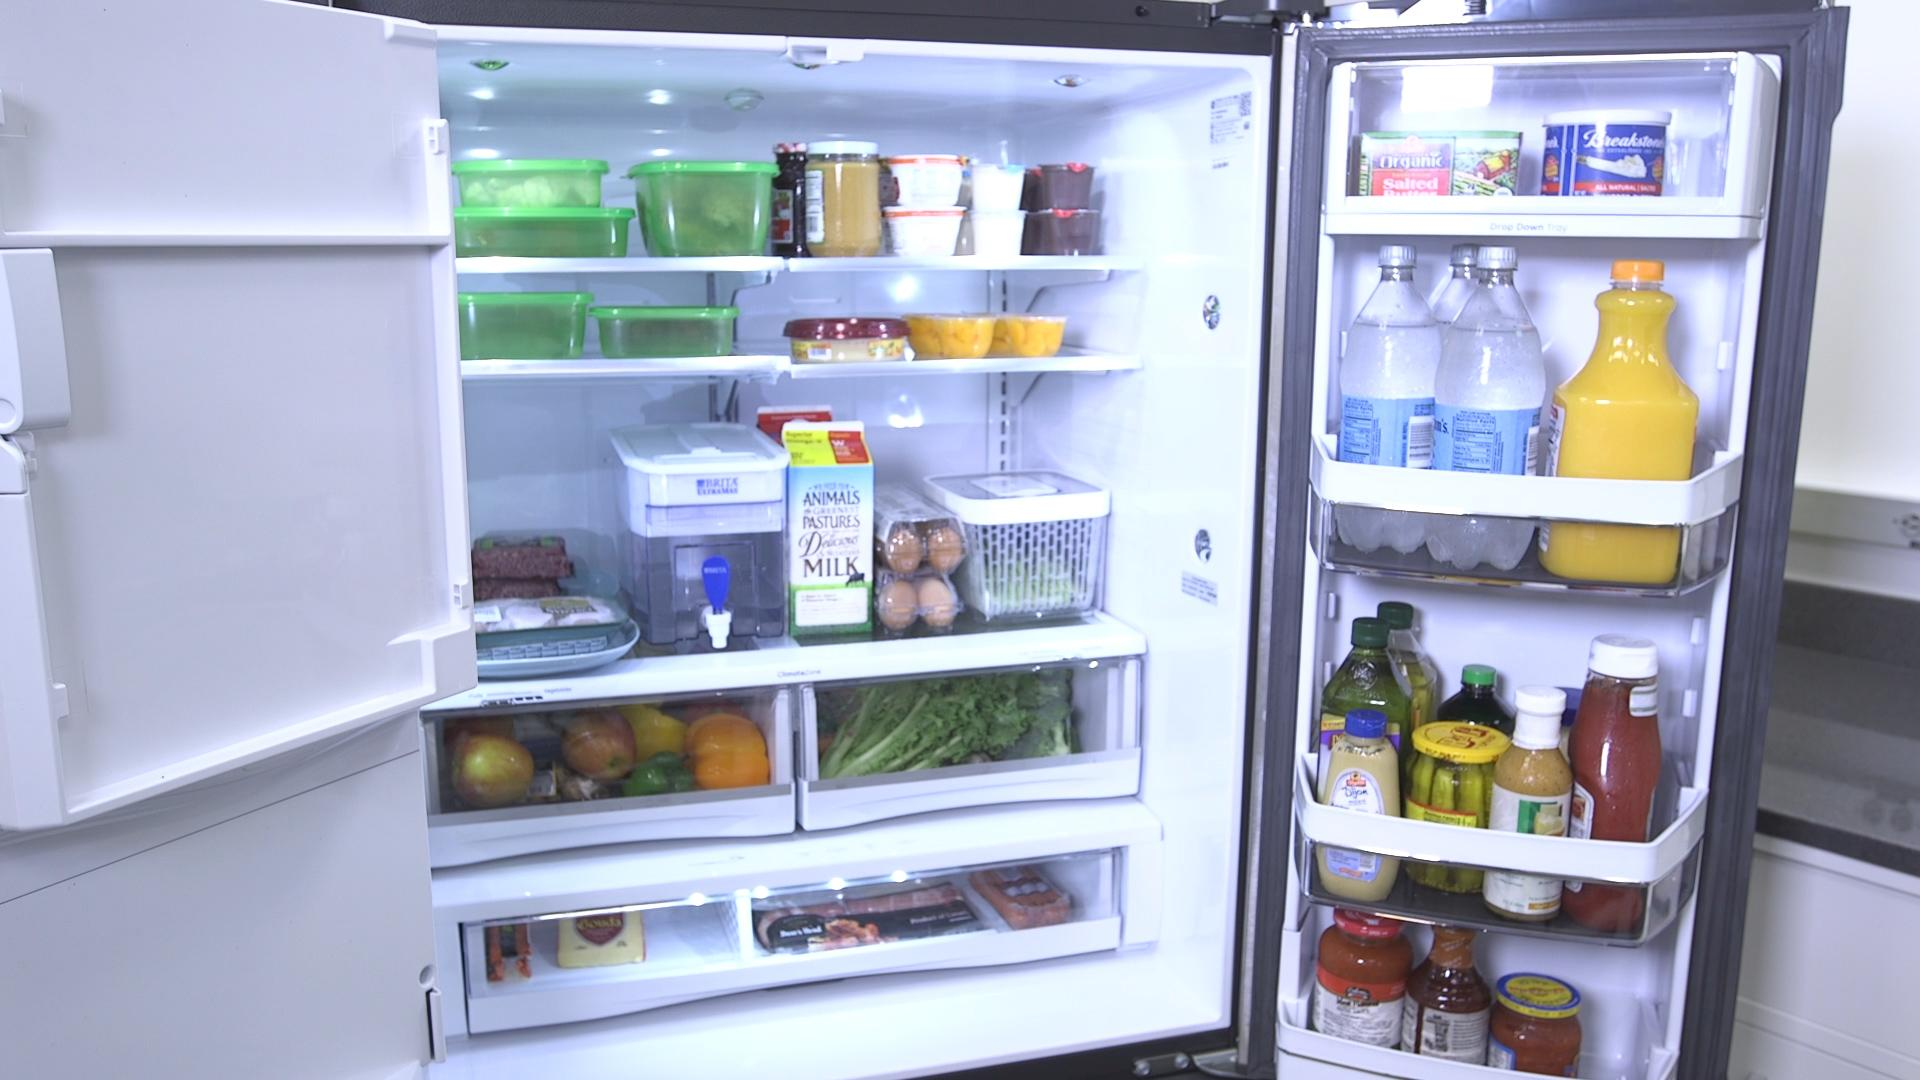 What Temperature Should Food Be Stored In A Refrigerator